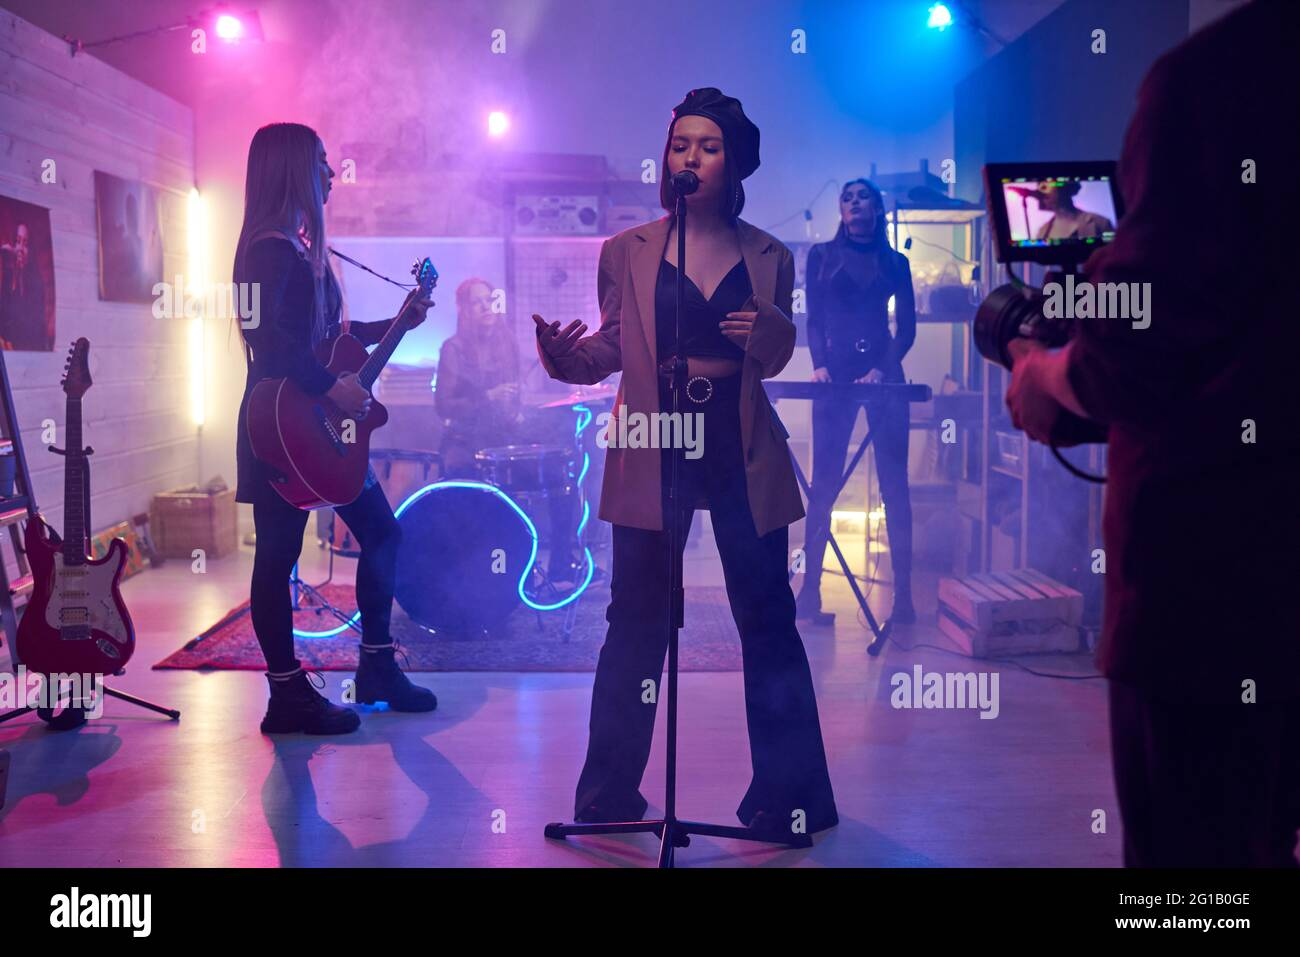 Young female singing on stage in front of cameraman shooting music video Stock Photo